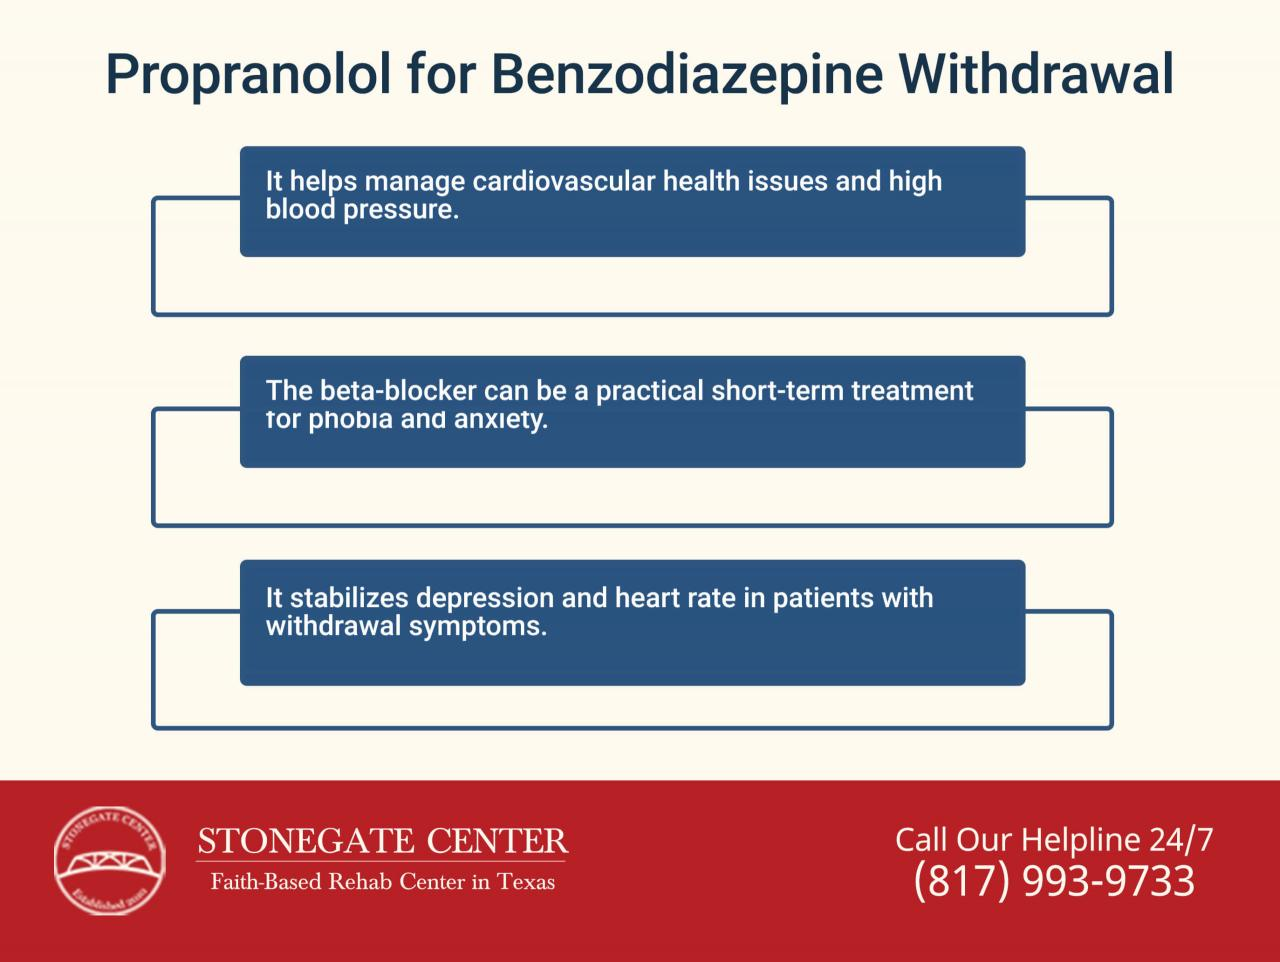 Why Is Propranolol One of the Most Common Medications Given at Detox  Centers? - Stonegate Center